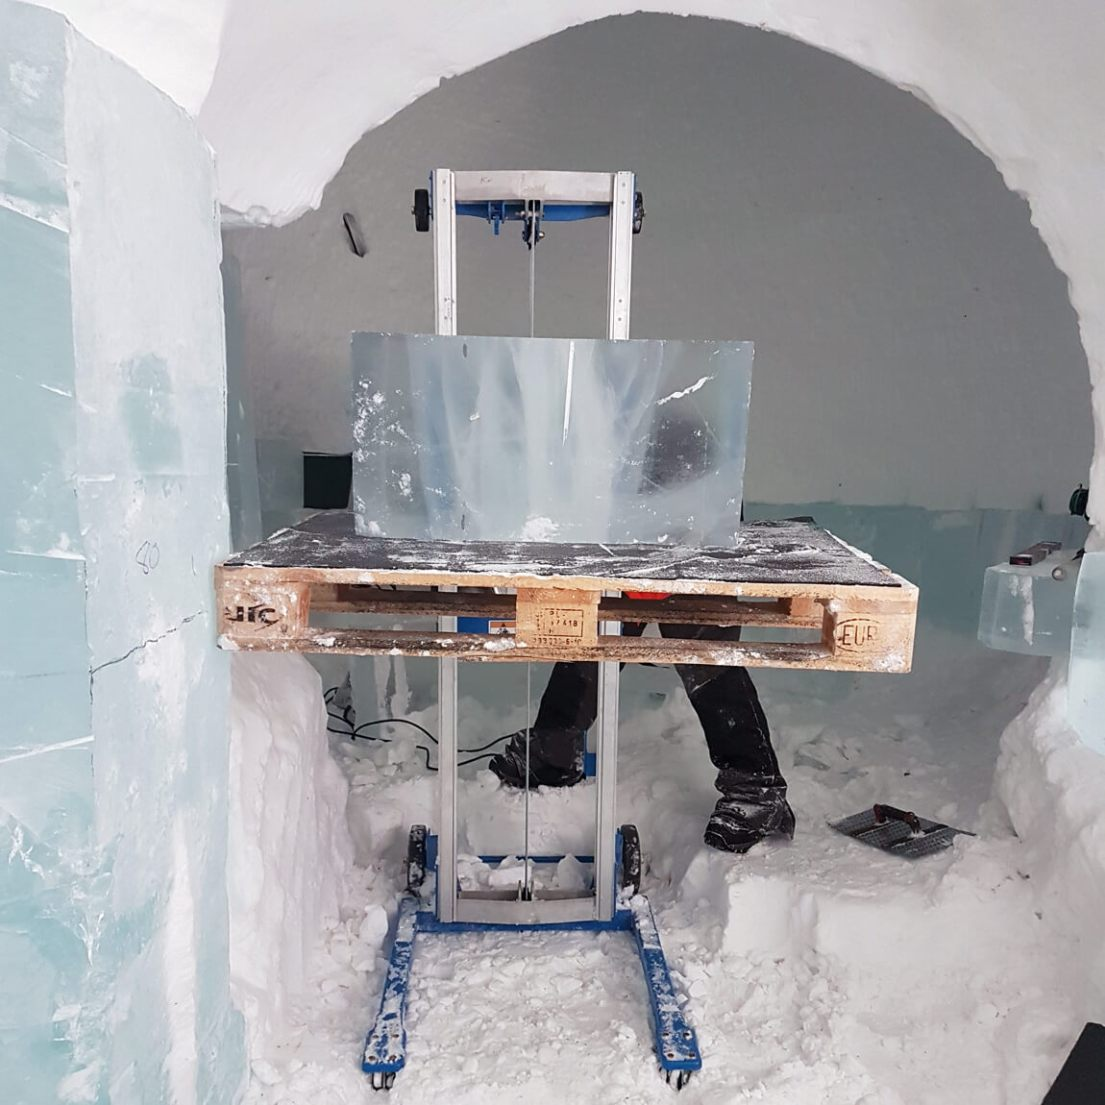 Building the ICEHOTEL - special equipment is needed to lift heavy ice blocks to construct the walls